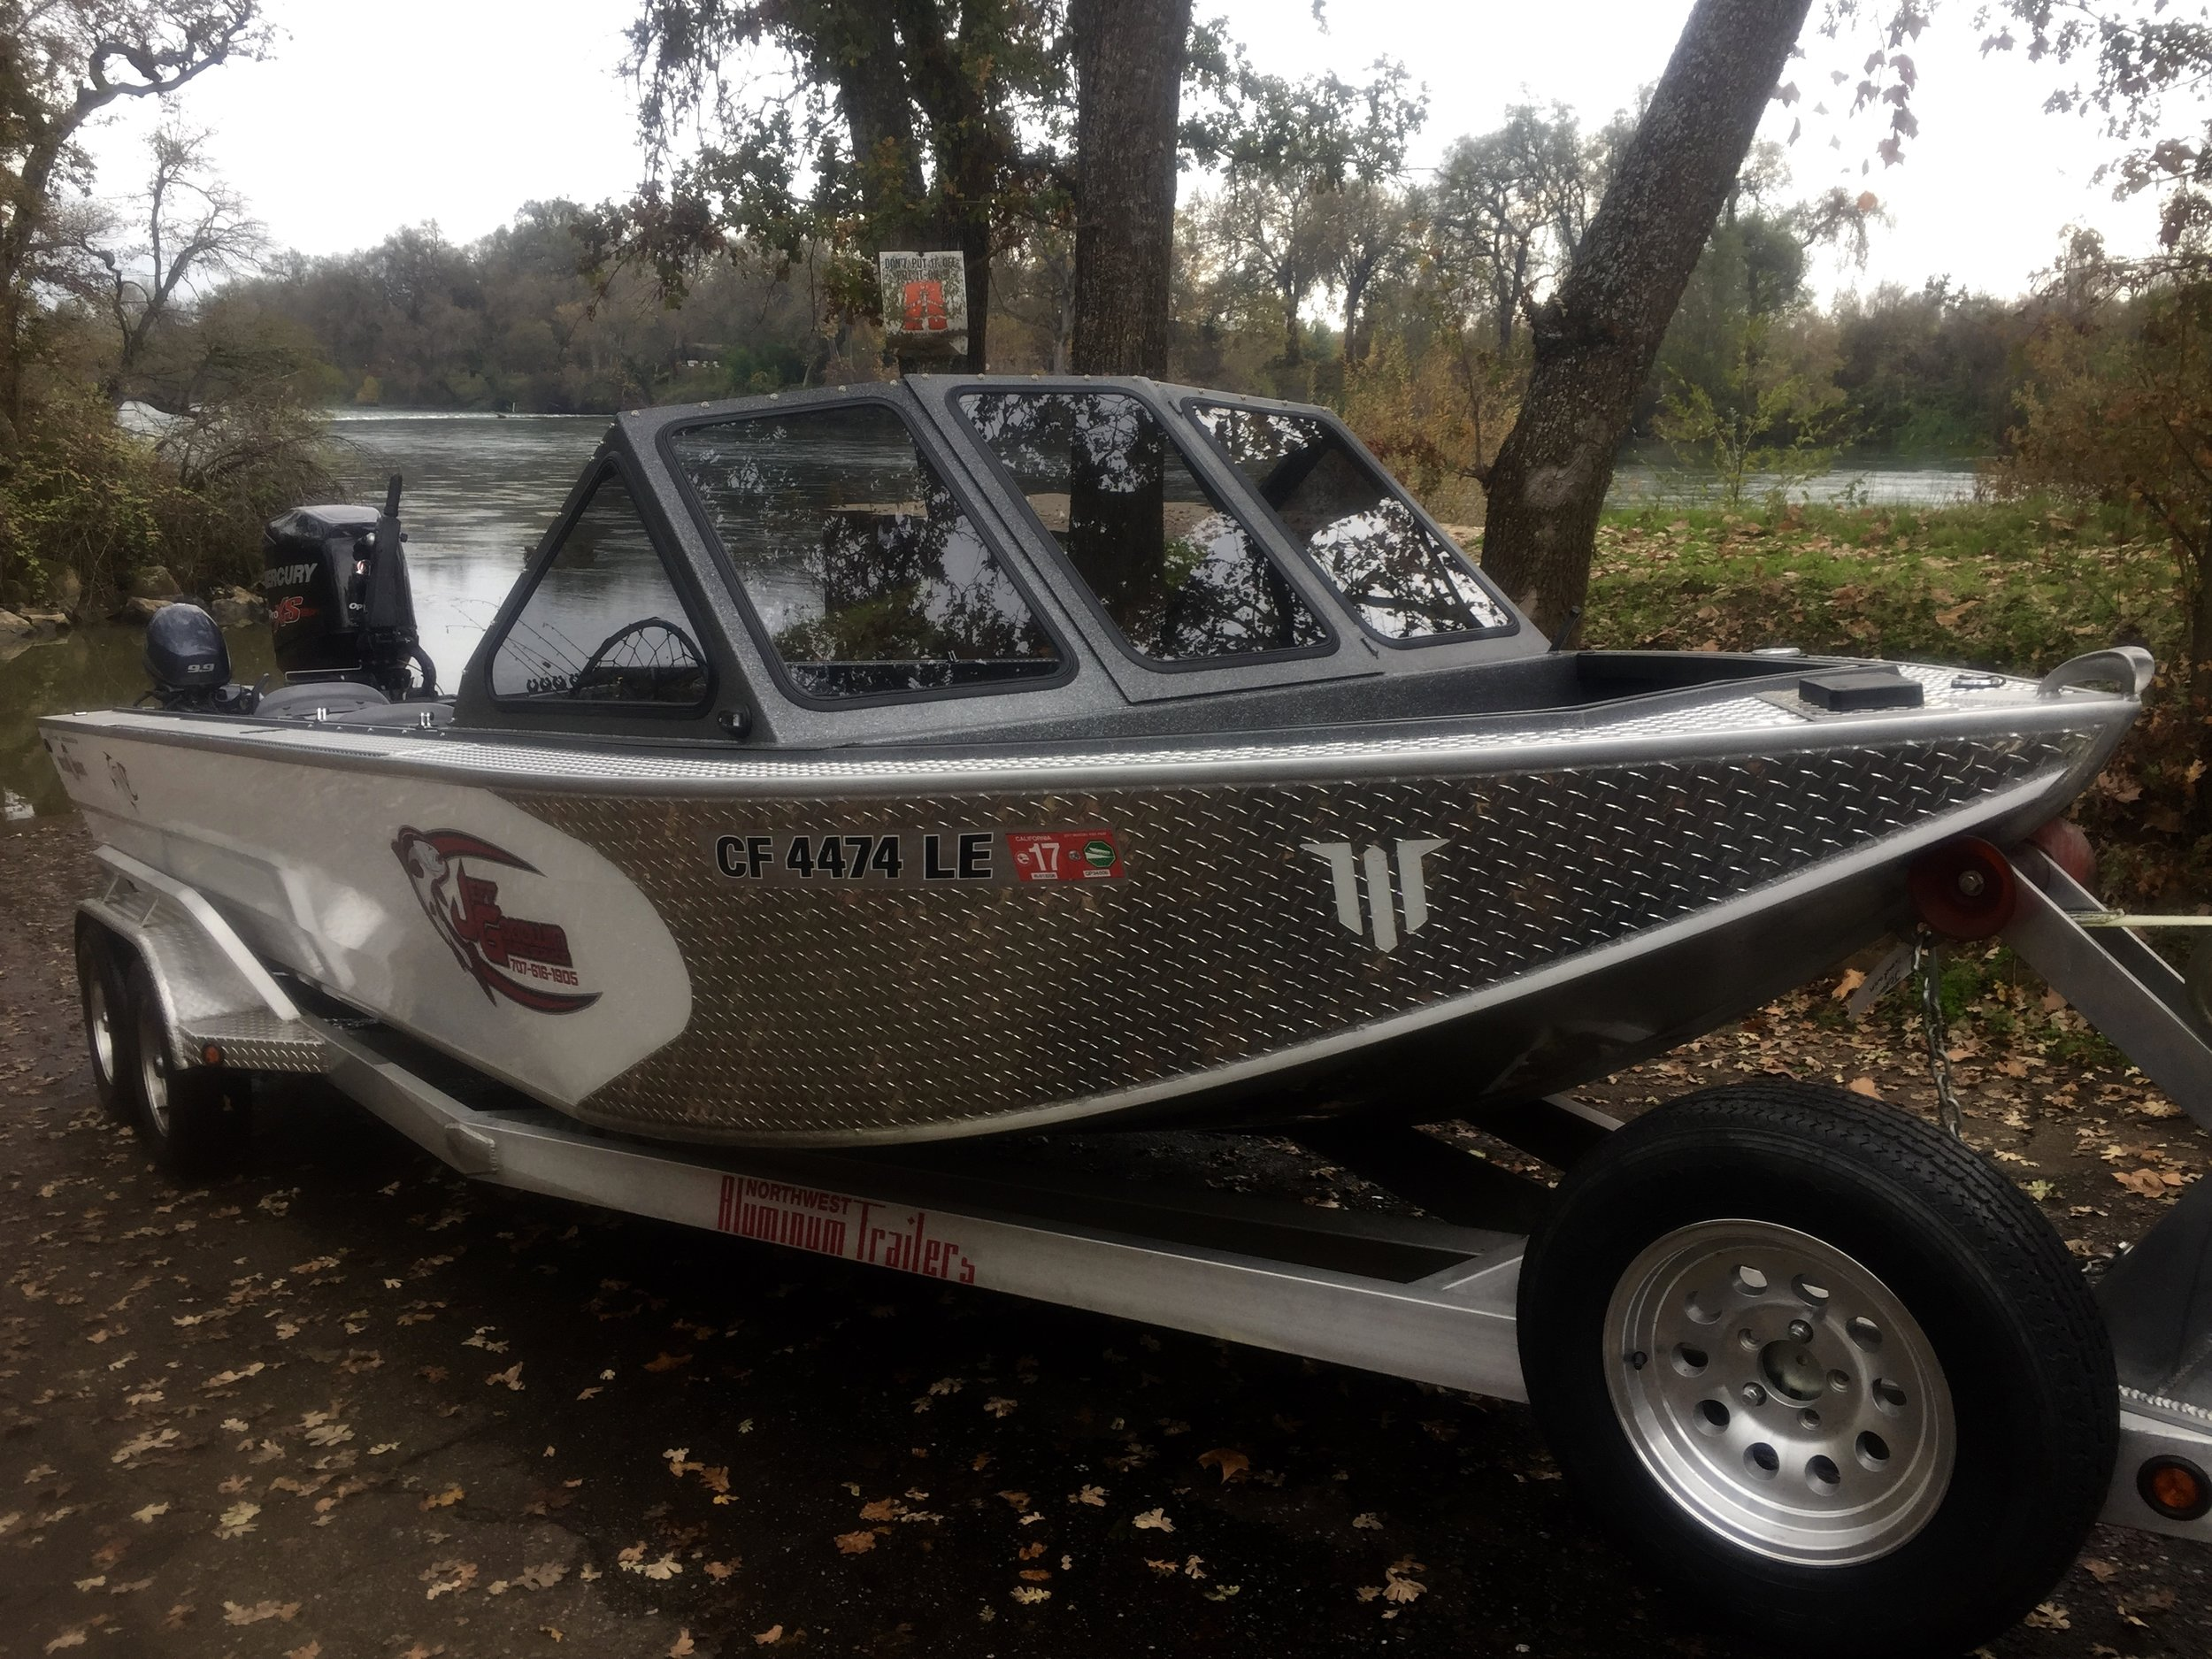 Our 2014 Willie Fuzion jet boat pictured with a new removable windshield.